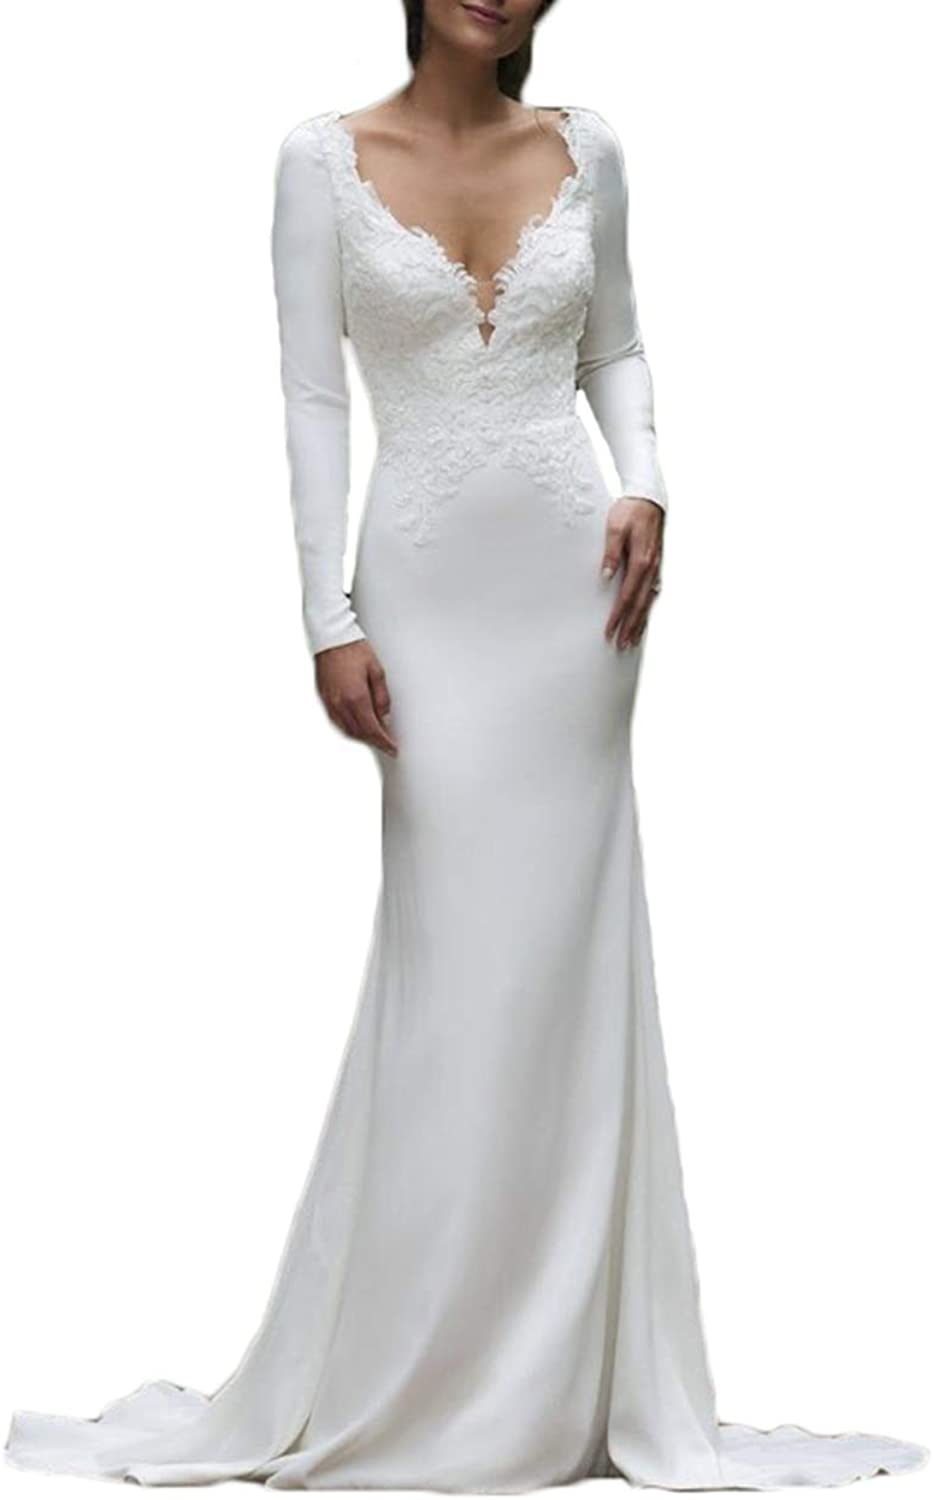 Alilith.Z Sexy V Neck Lace Wedding Dresses for Bride 2018 Elegant Long Mermaid Bridal Wedding Gowns with Sleeves